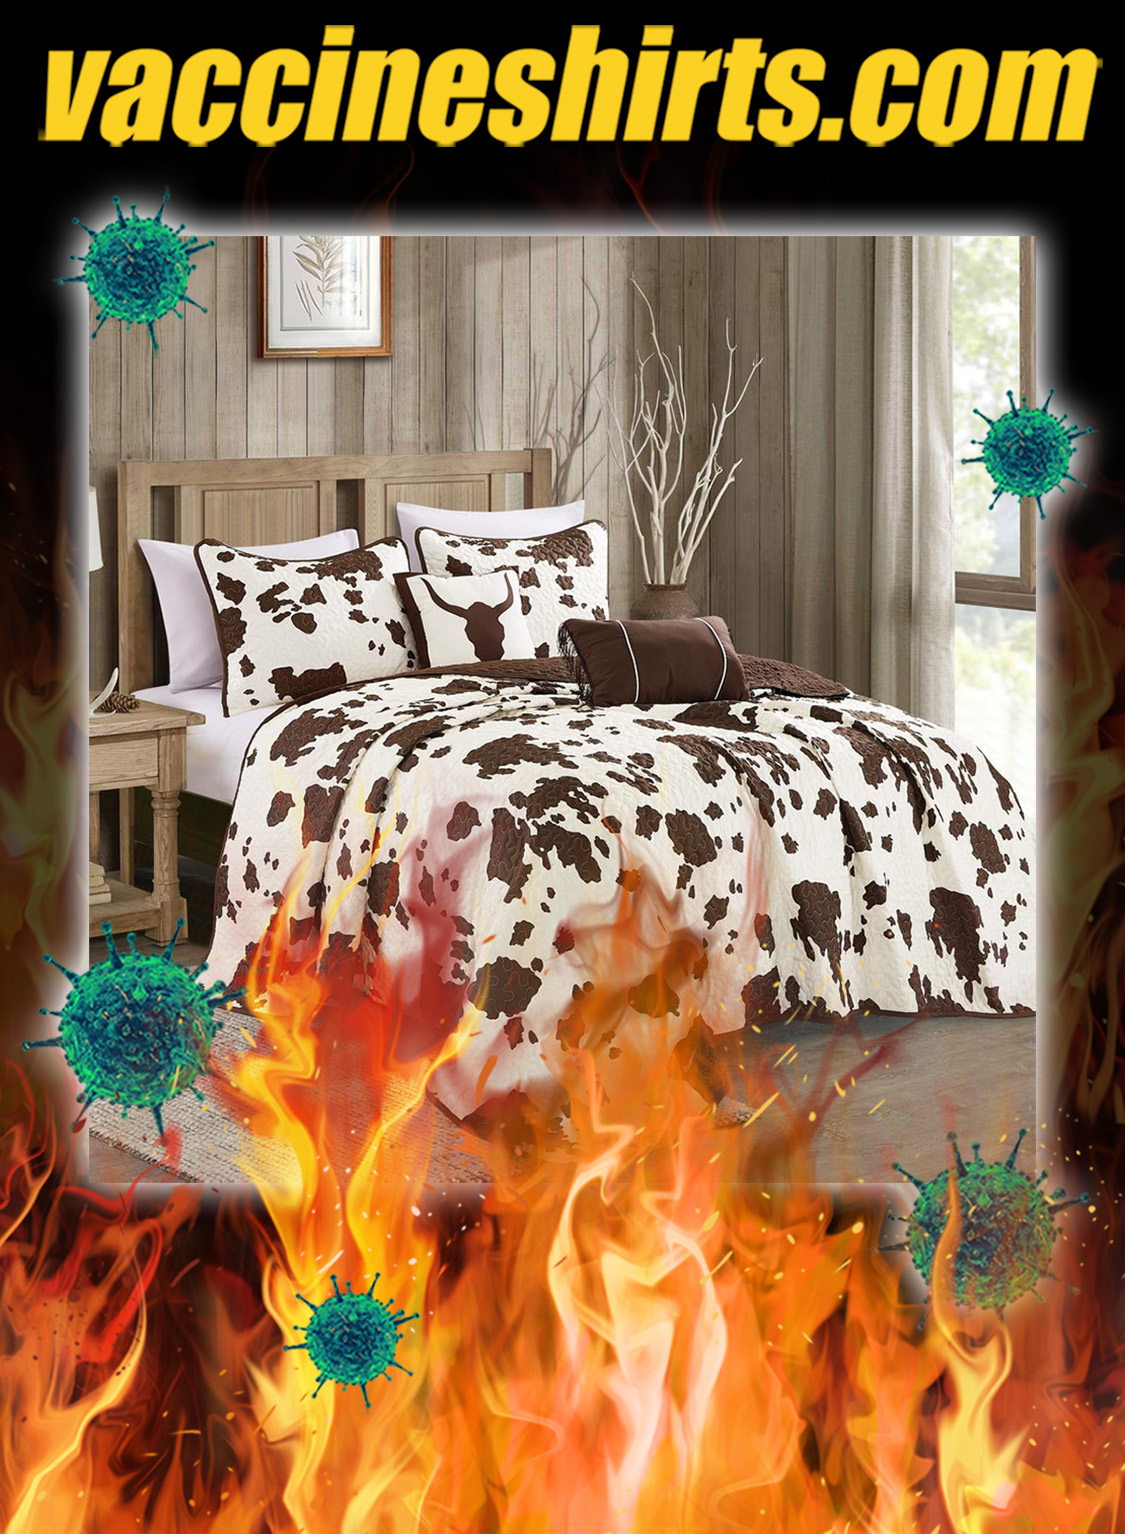 Rustic cowhide brown cow skull quilt bedding set - twin